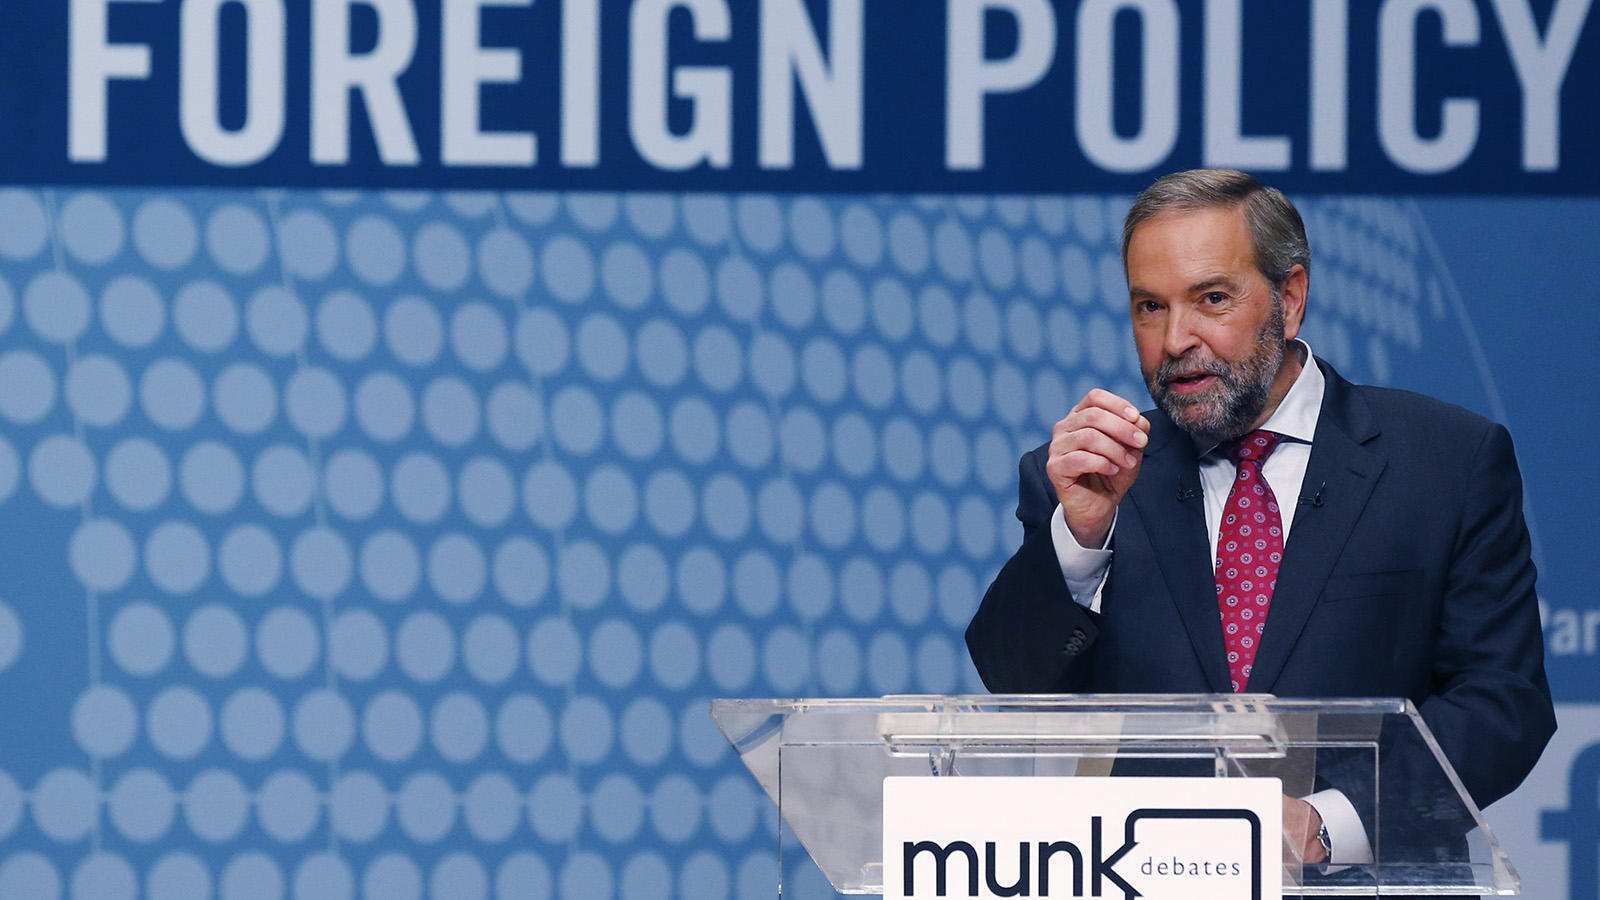 New Democratic Party (NDP) leader Thomas Mulcair speaks at the Munk leaders' debate on Canada's foreign policy in Toronto, Canada September 28, 2015. Canadians go to the polls in a federal election on October 19, 2015. REUTERS/Mark Blinch (CANADA  - Tags: POLITICS ELECTIONS)   - RTS25VT